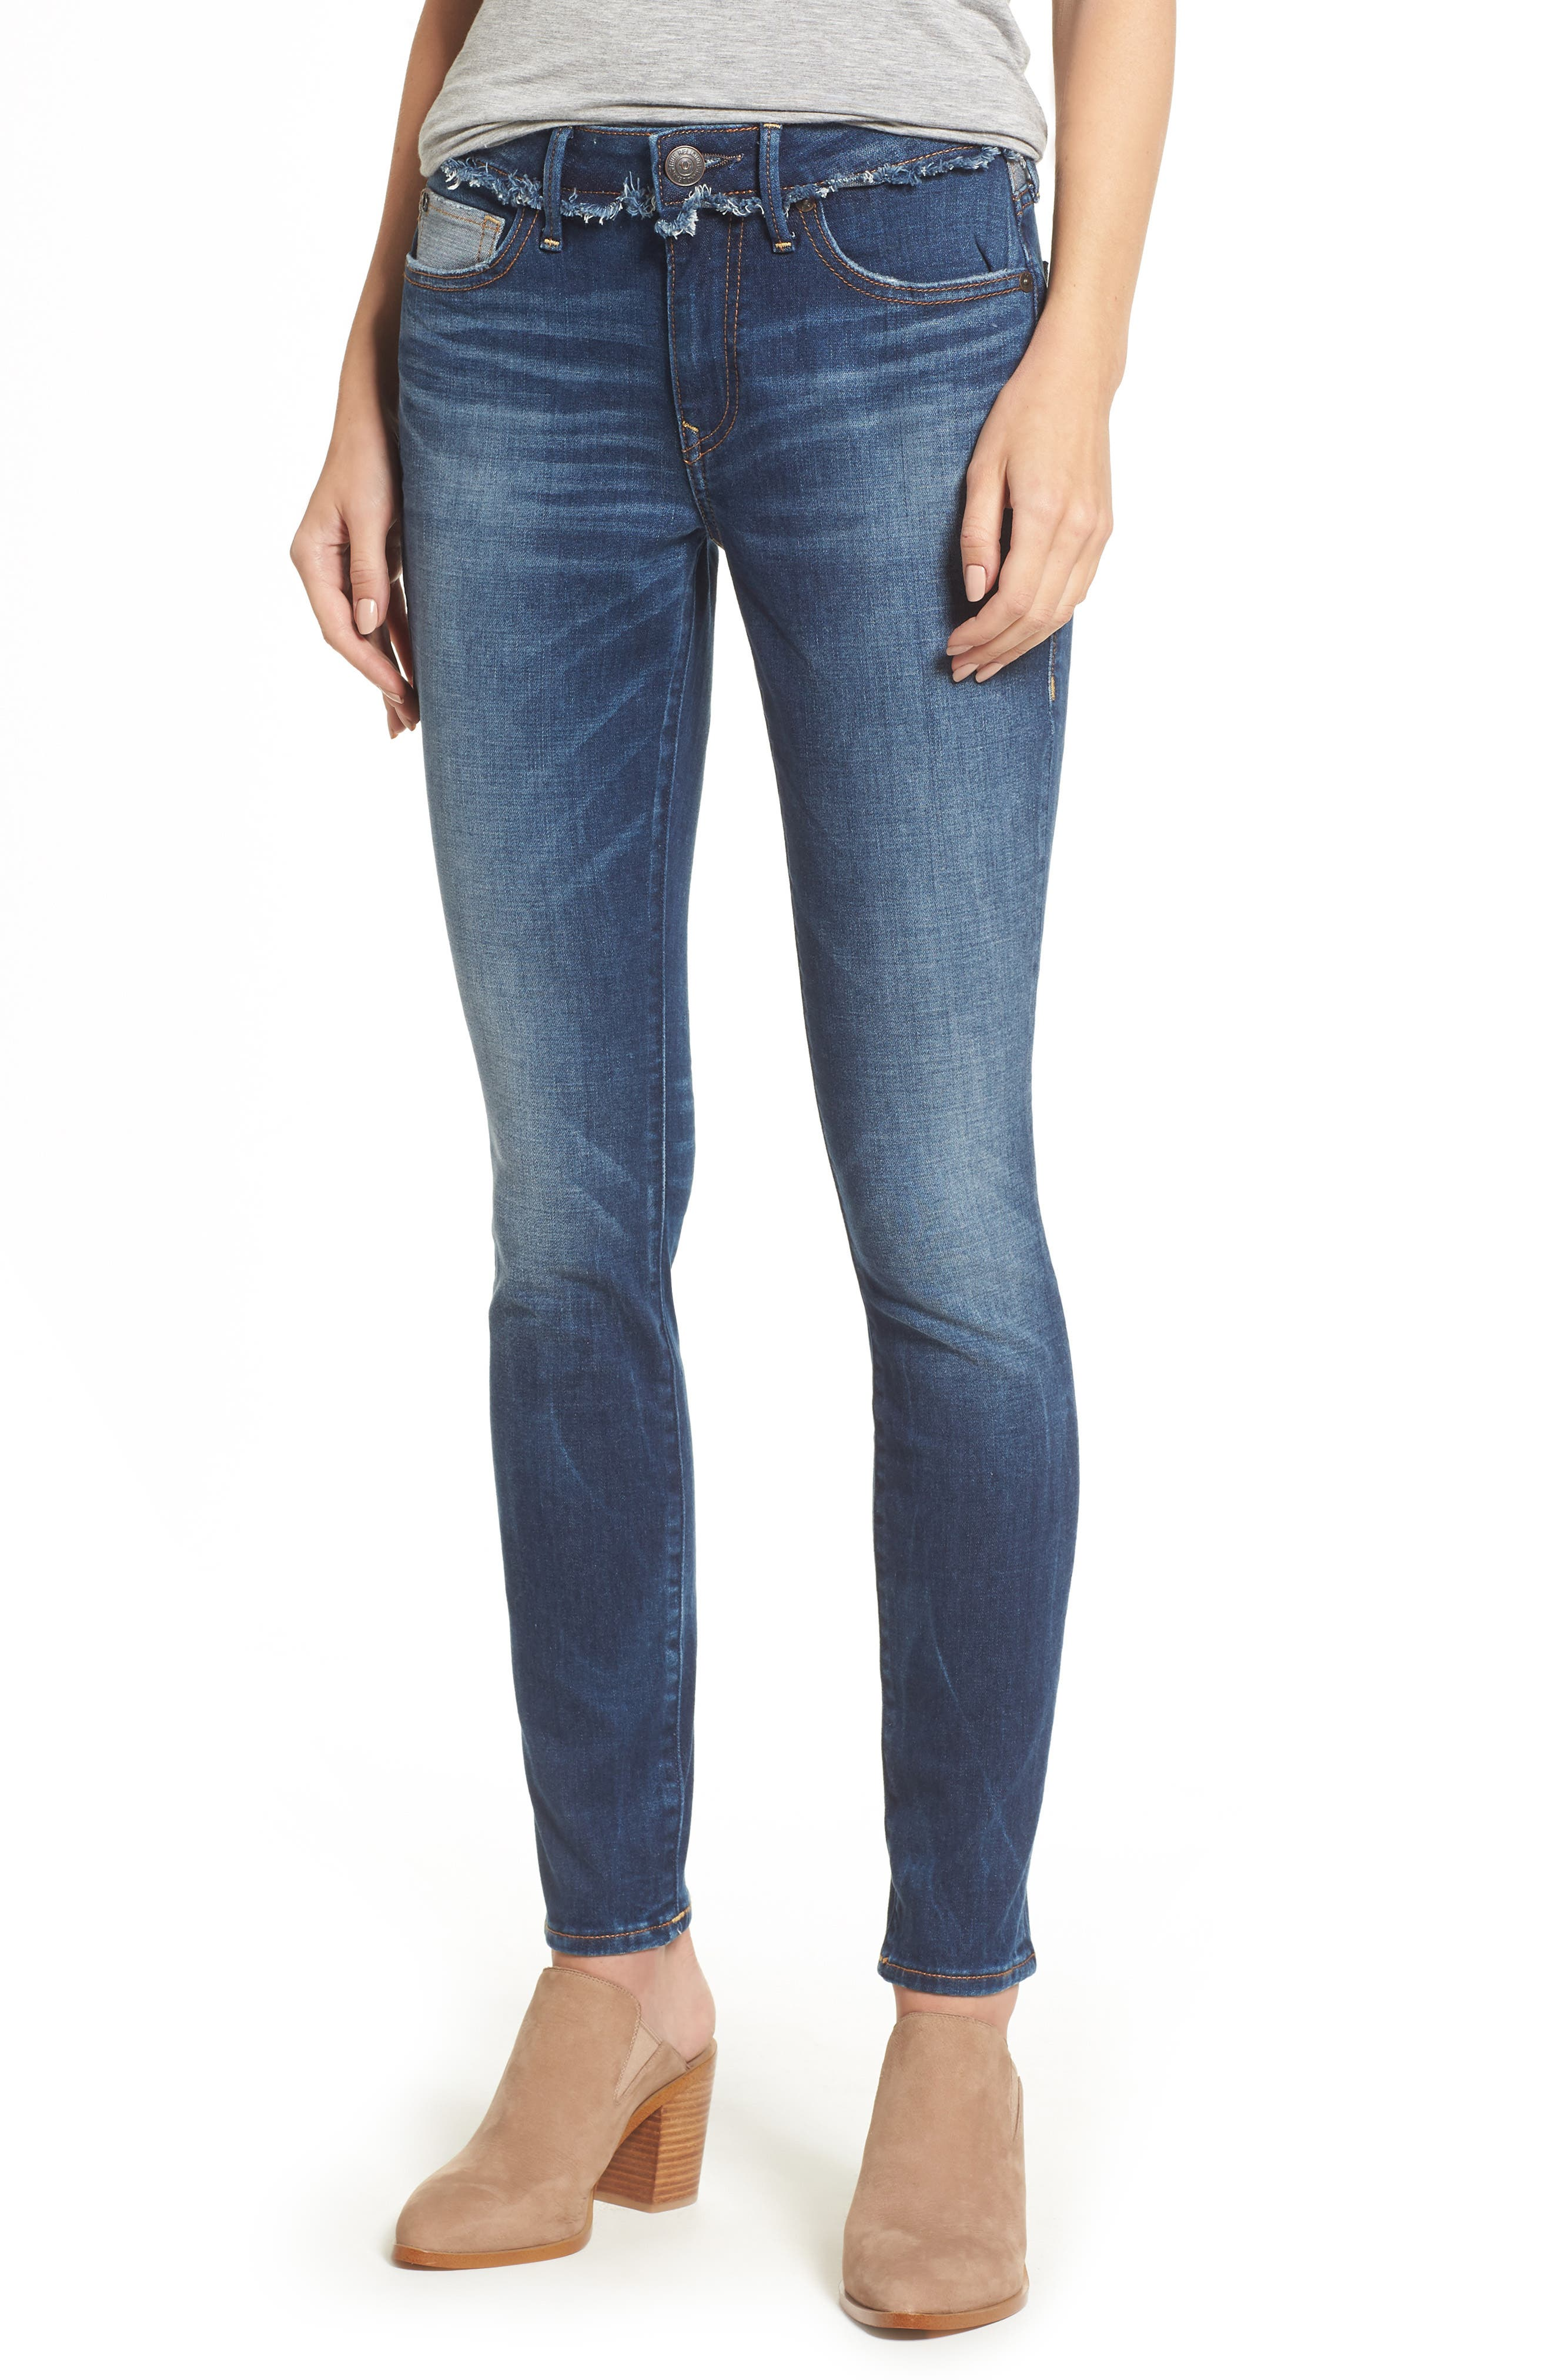 Jennie Deconstructed Skinny Jeans,                         Main,                         color, Broken Record